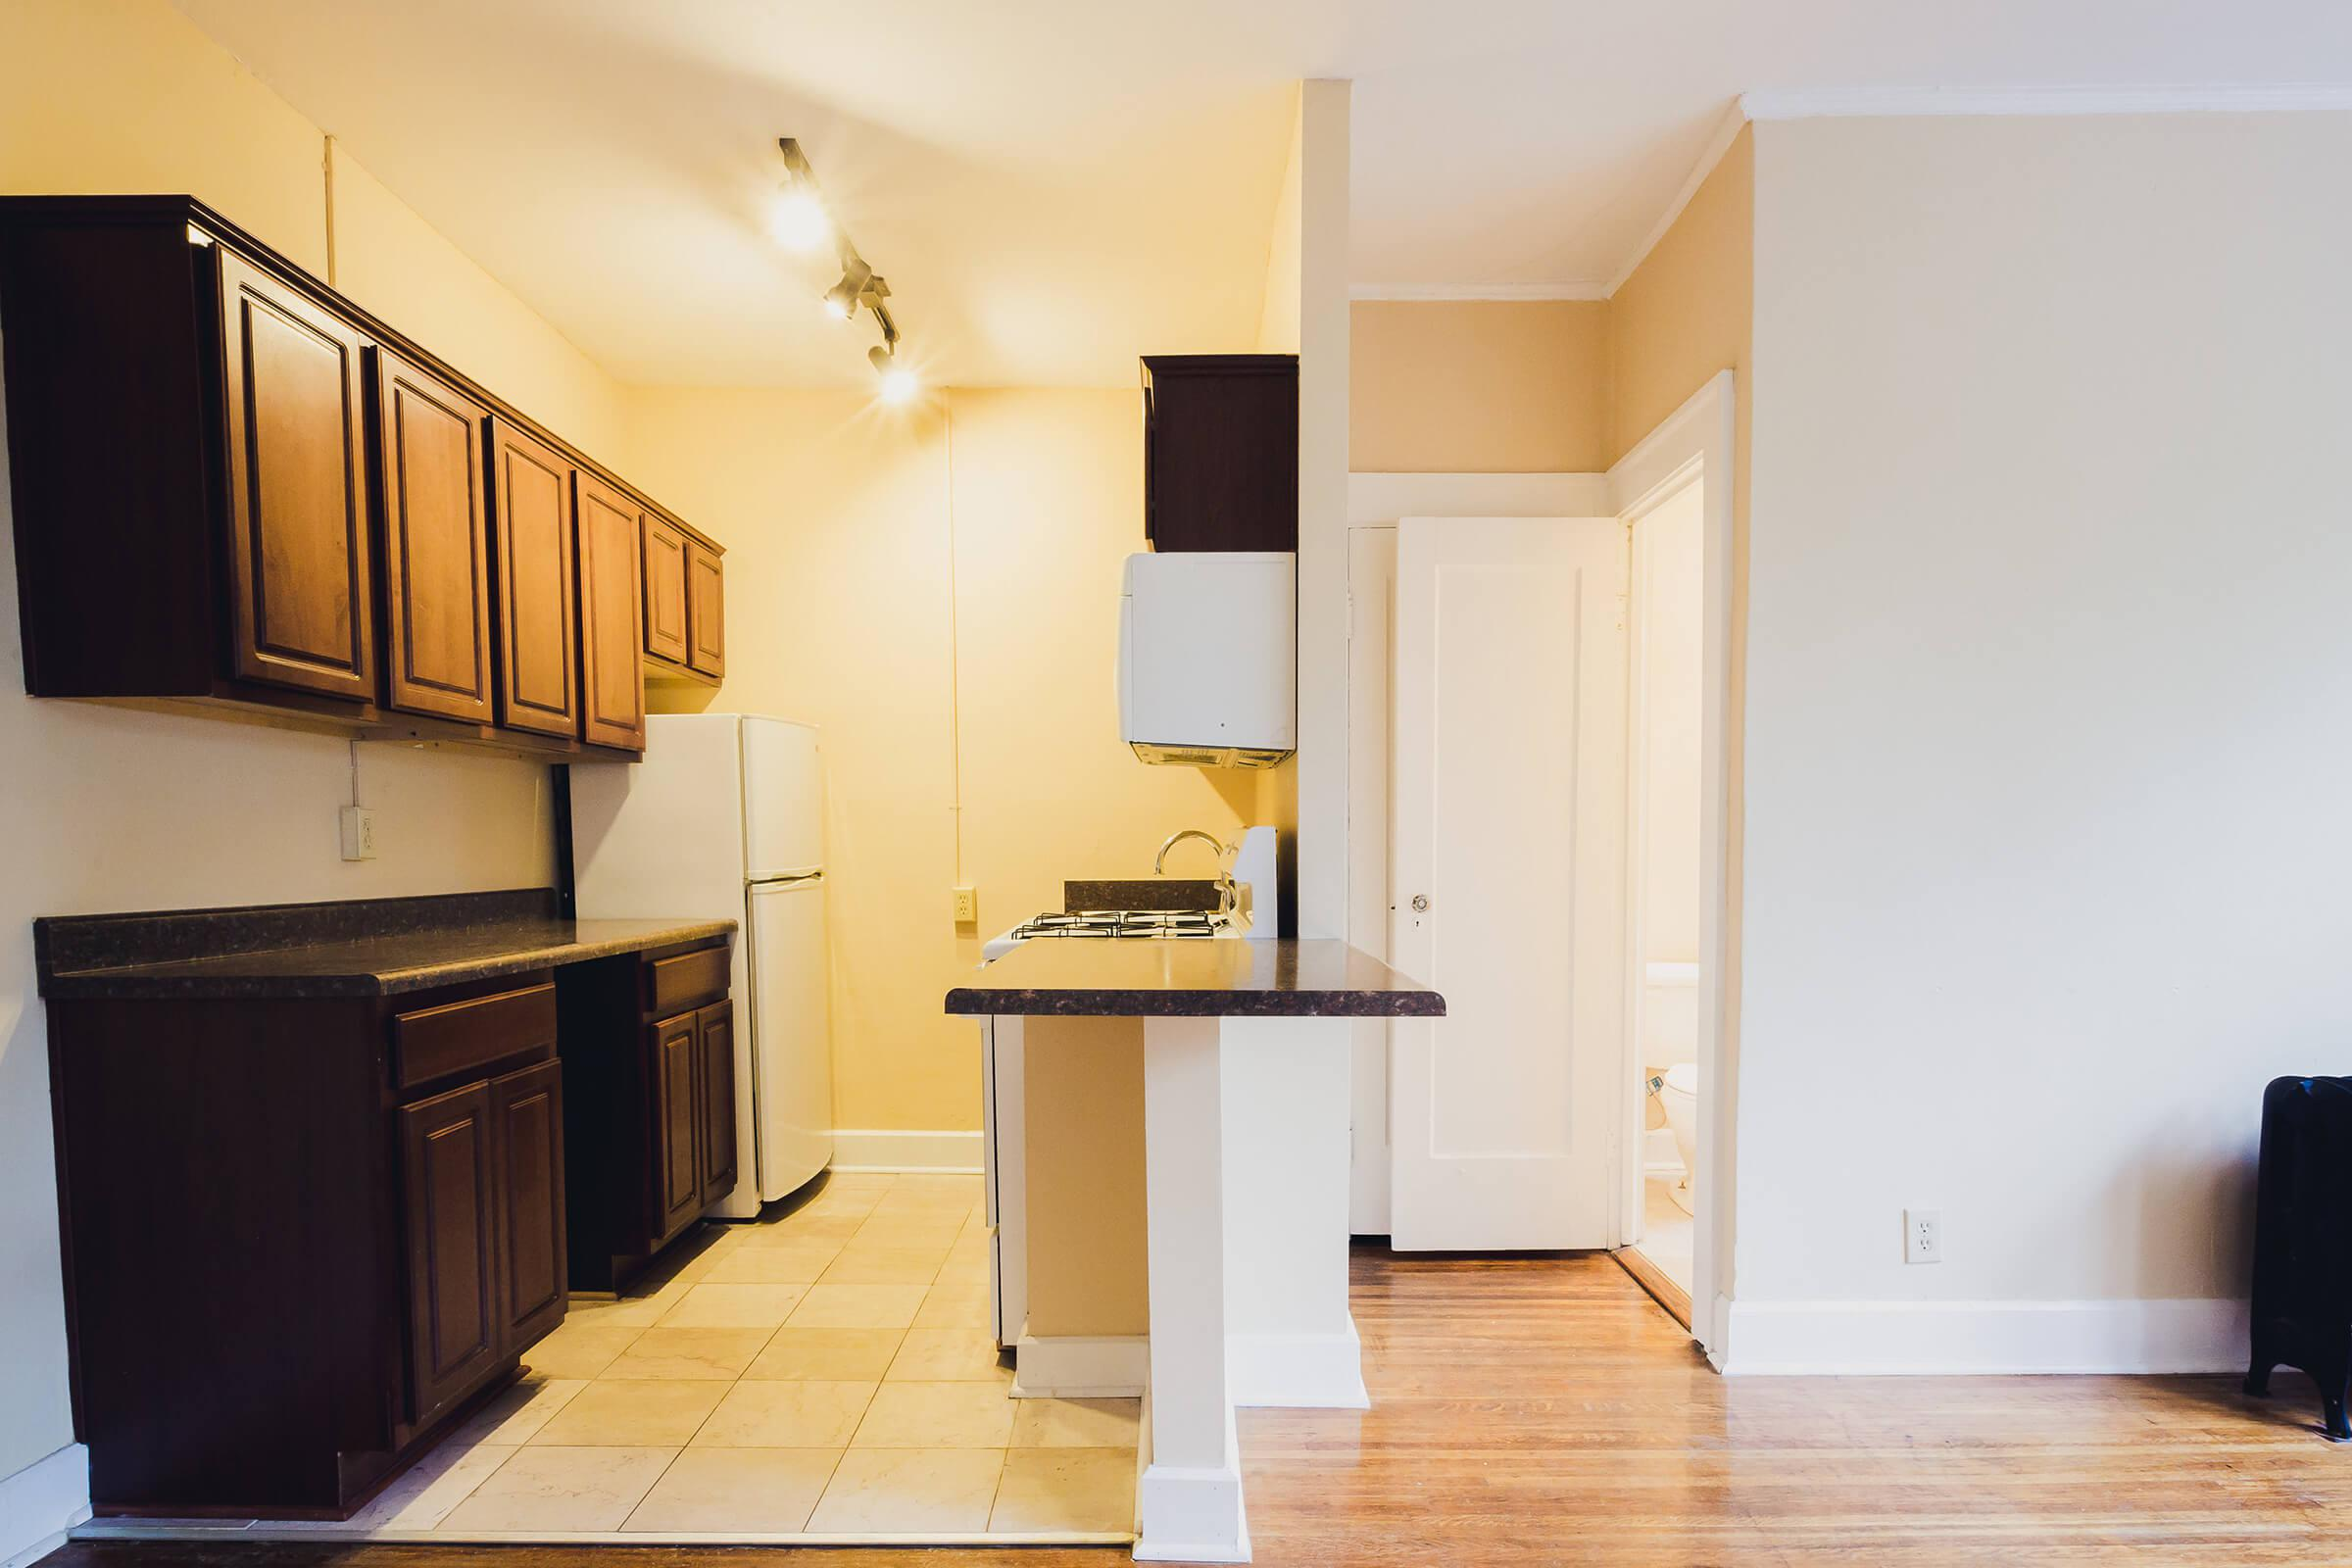 a kitchen with a refrigerator in a room